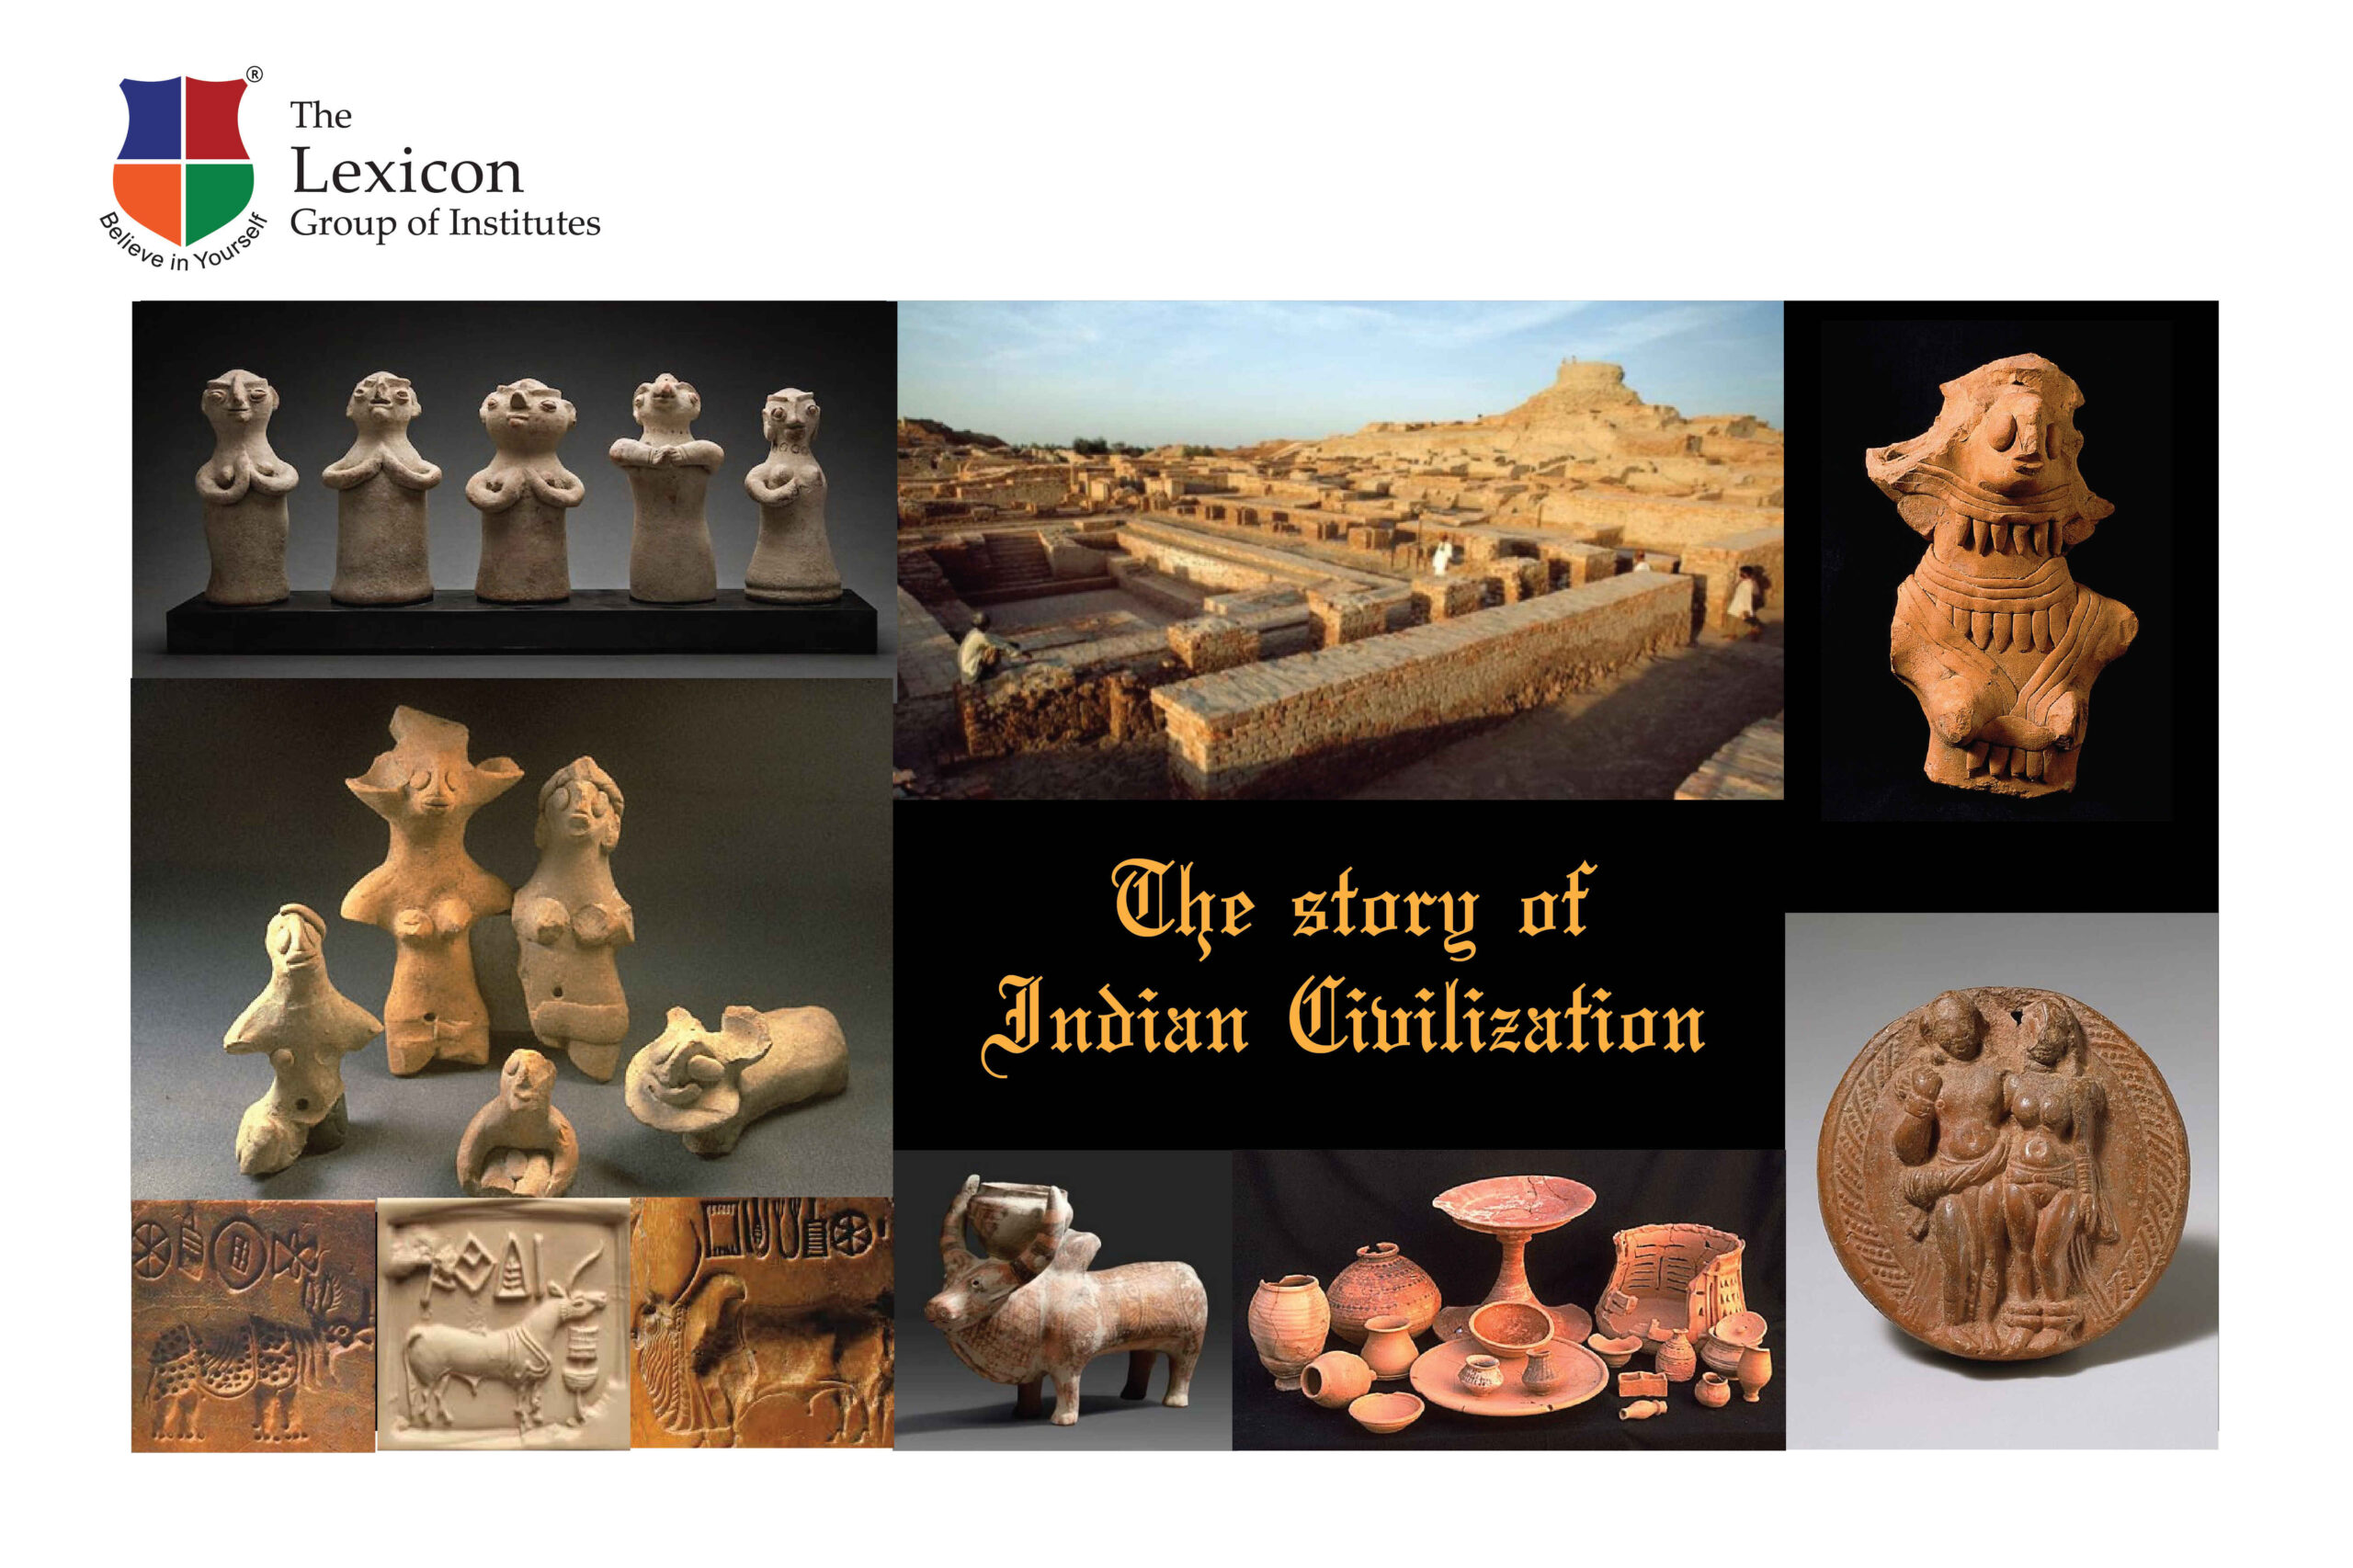 The story of Indian Civilization